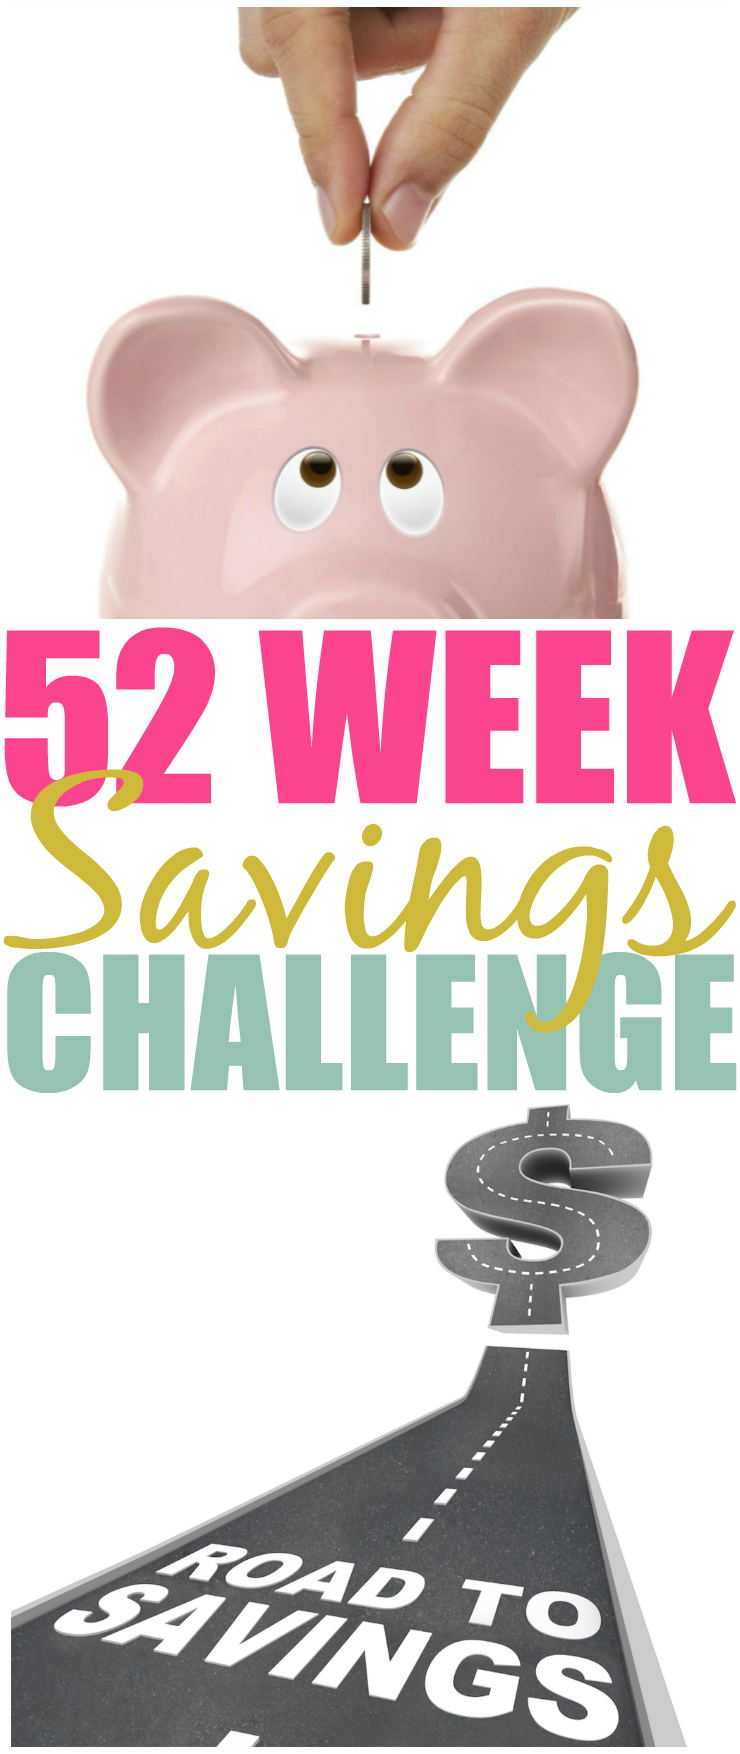 This is an image of Satisfactory Mommy Savings Printable Coupons